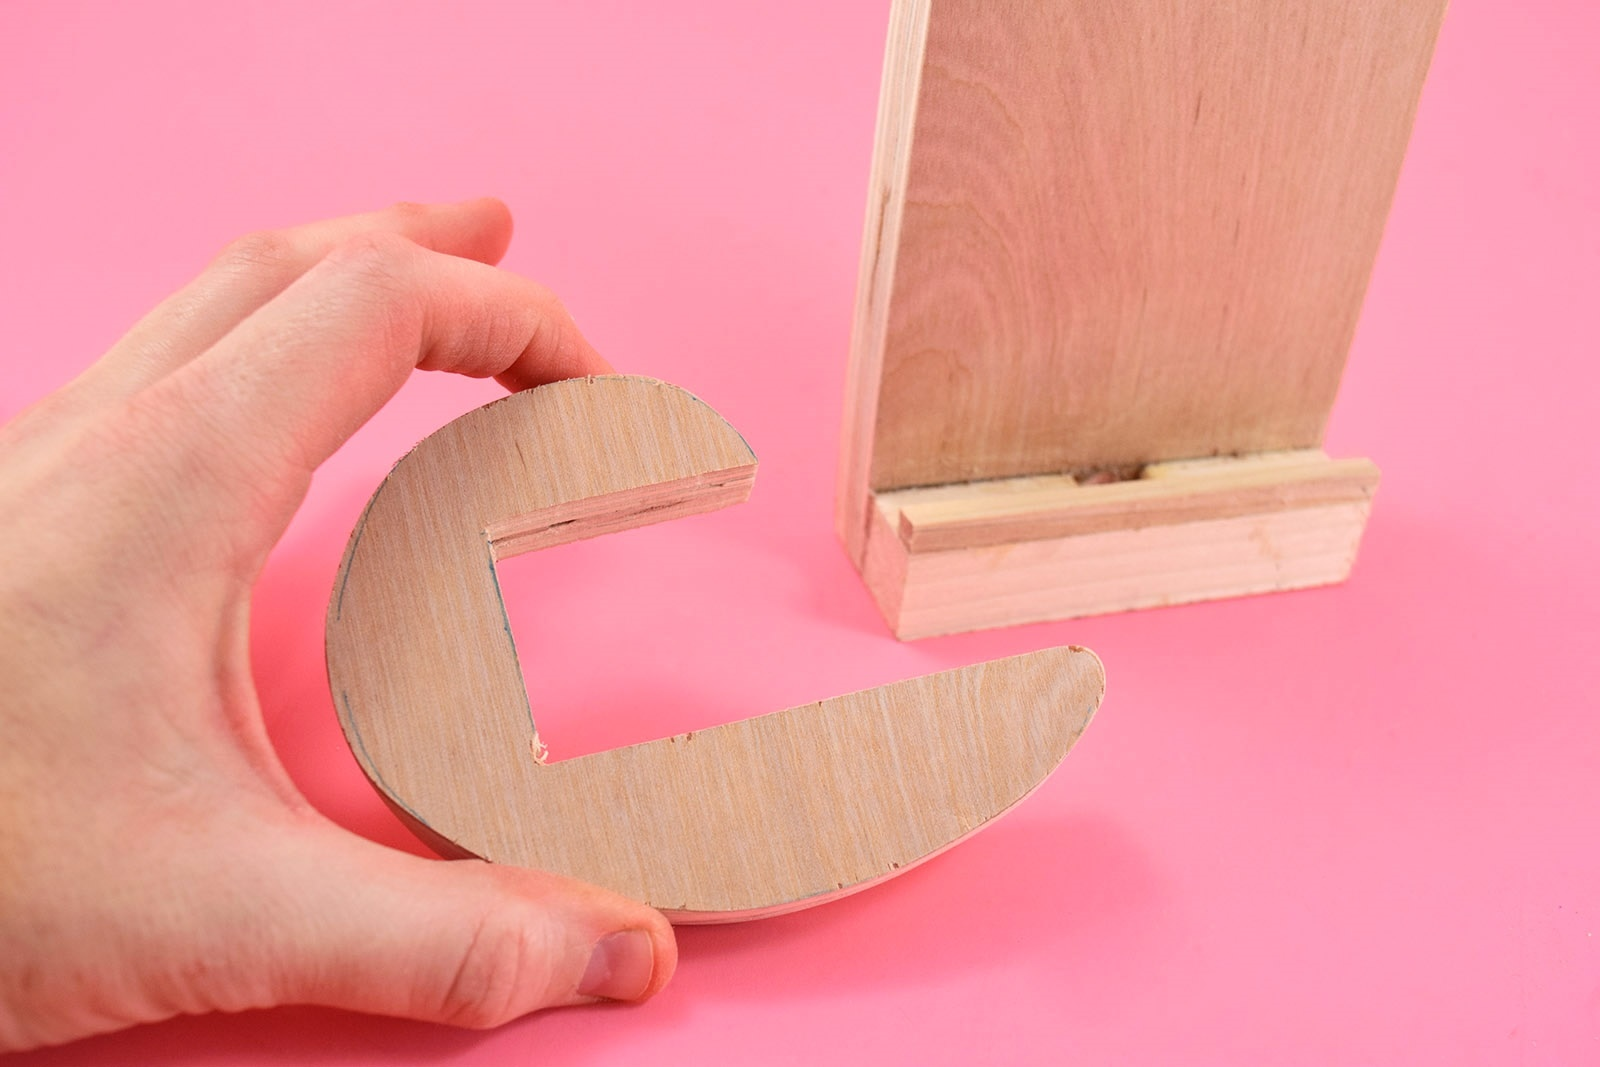 DIY Cat Shaped Smart Phone Holder from Wood Step 14